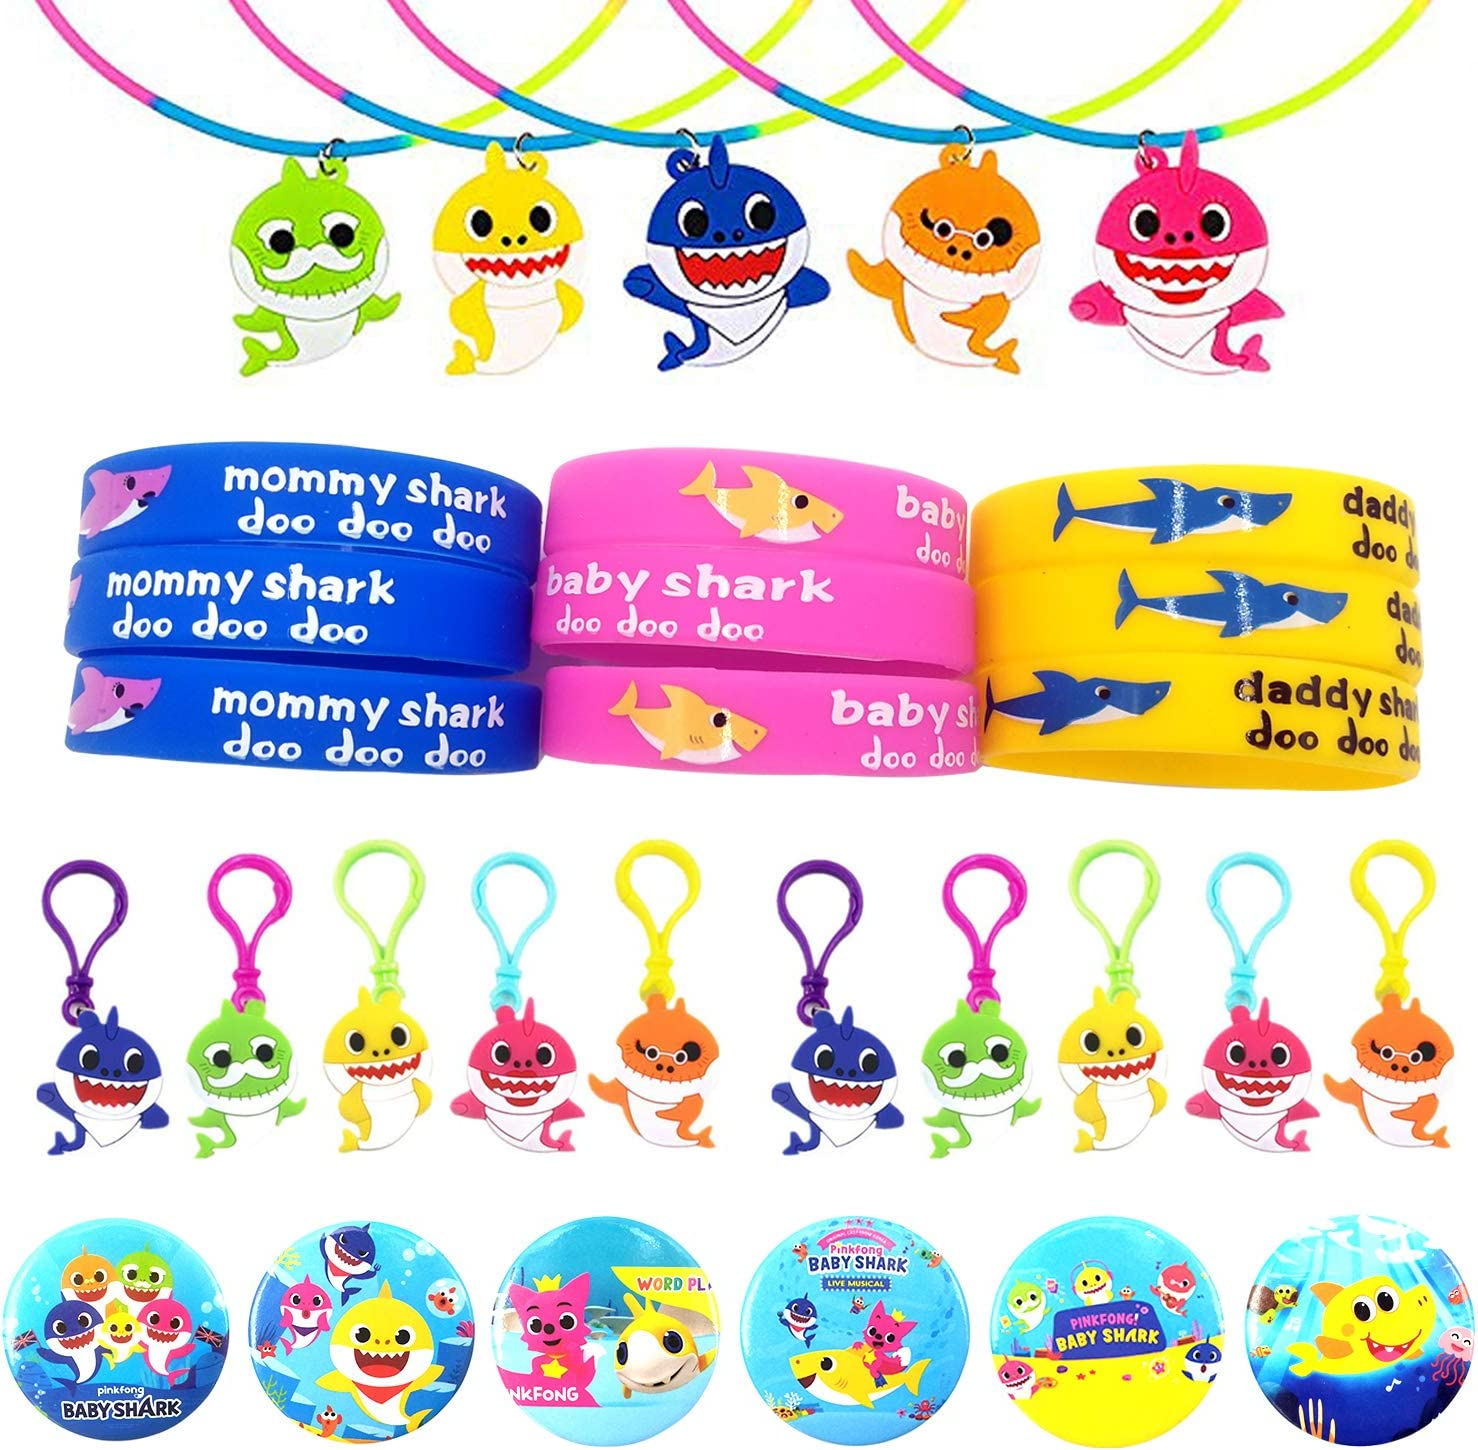 6 20 10 30 Star Heart Pendant kids Birthday Party Loot BAG TOY FILLERS favor